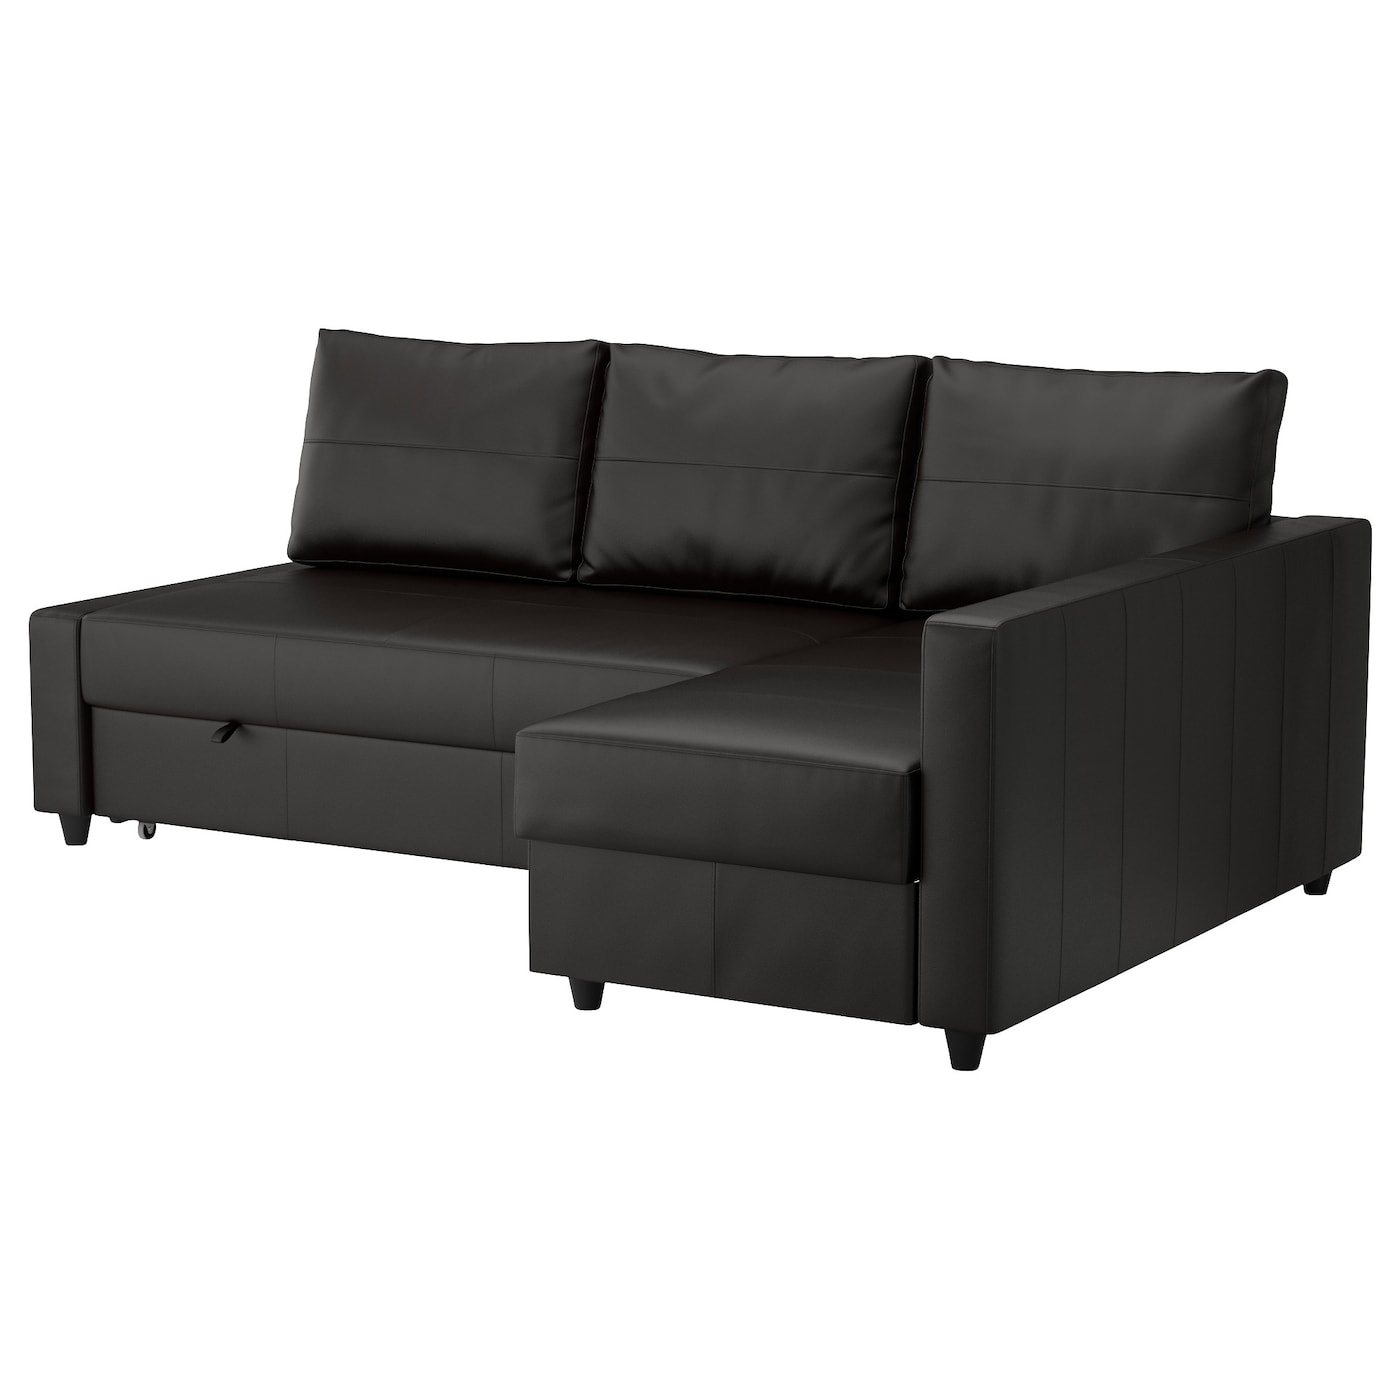 Ikea friheten corner sofa bed with storage sofa chaise longue and double bed in